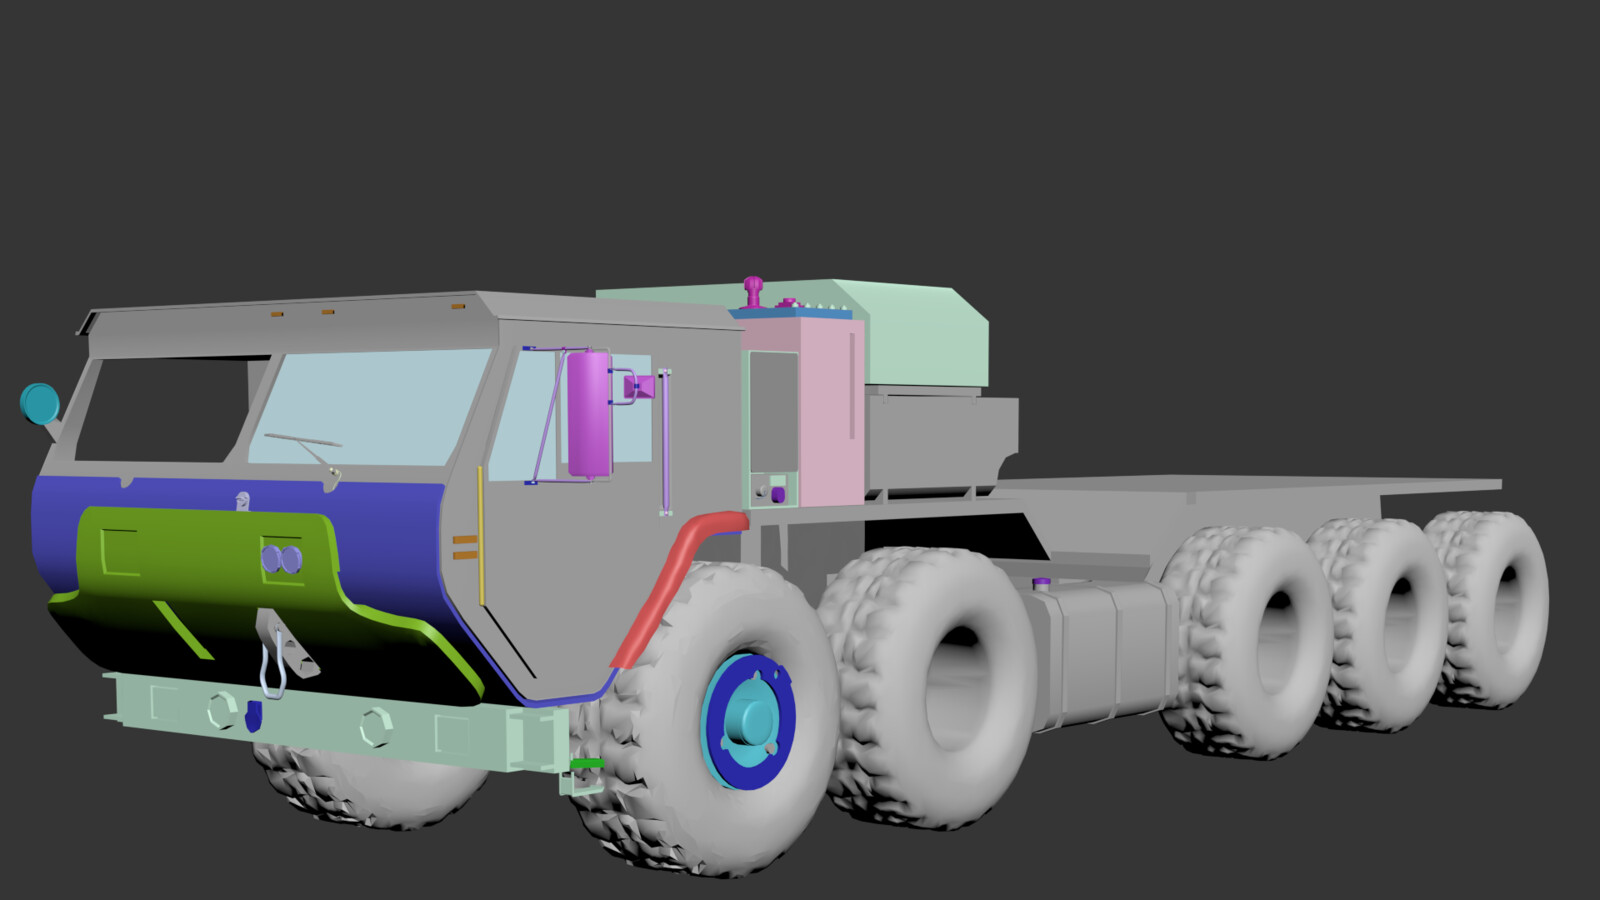 Truck prop modeled but finally left out!